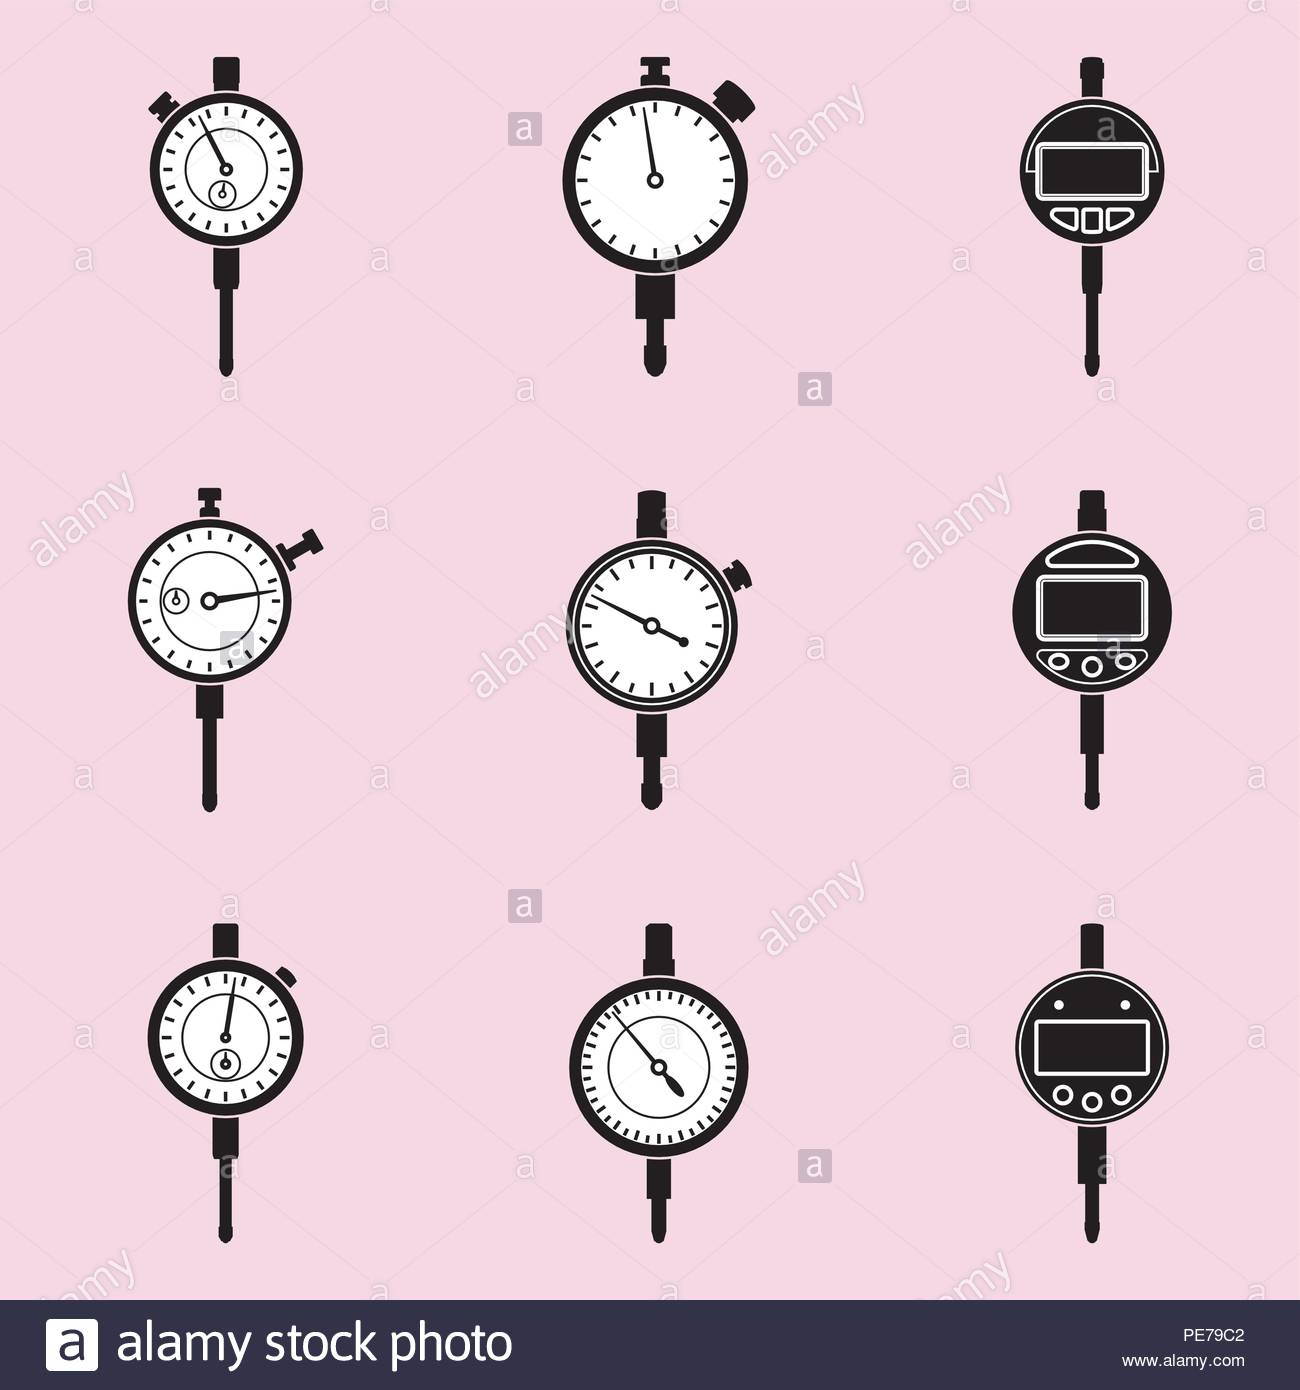 Machinist measuring tools Dial indicator icons on pink background 1300x1390